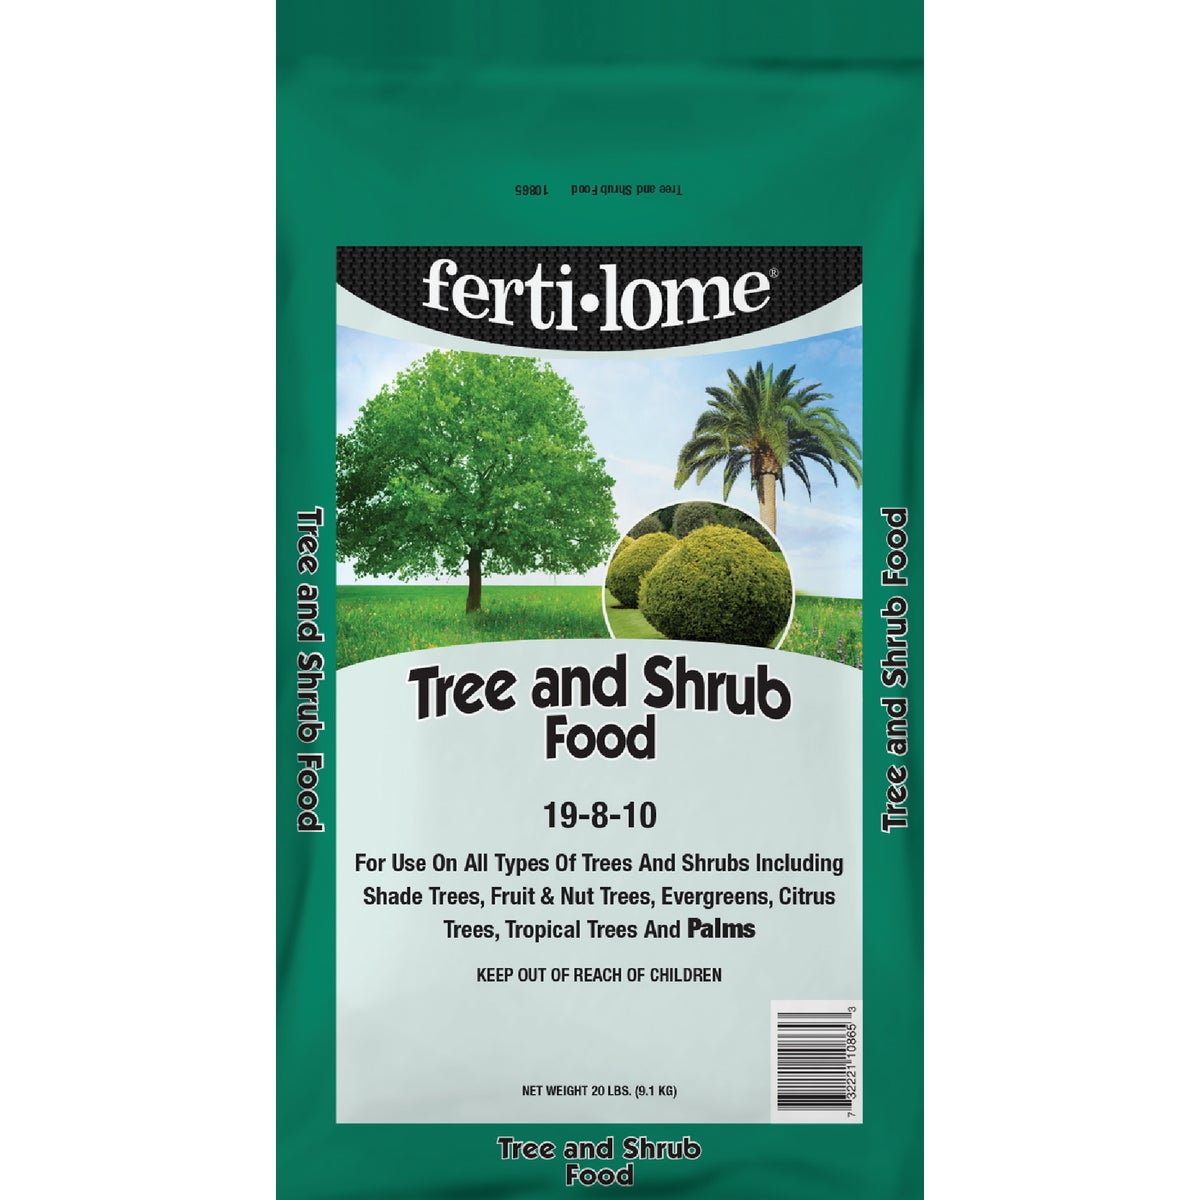 20LB TREE & SHRUB FOOD - 10865 by Vpg Fertilome